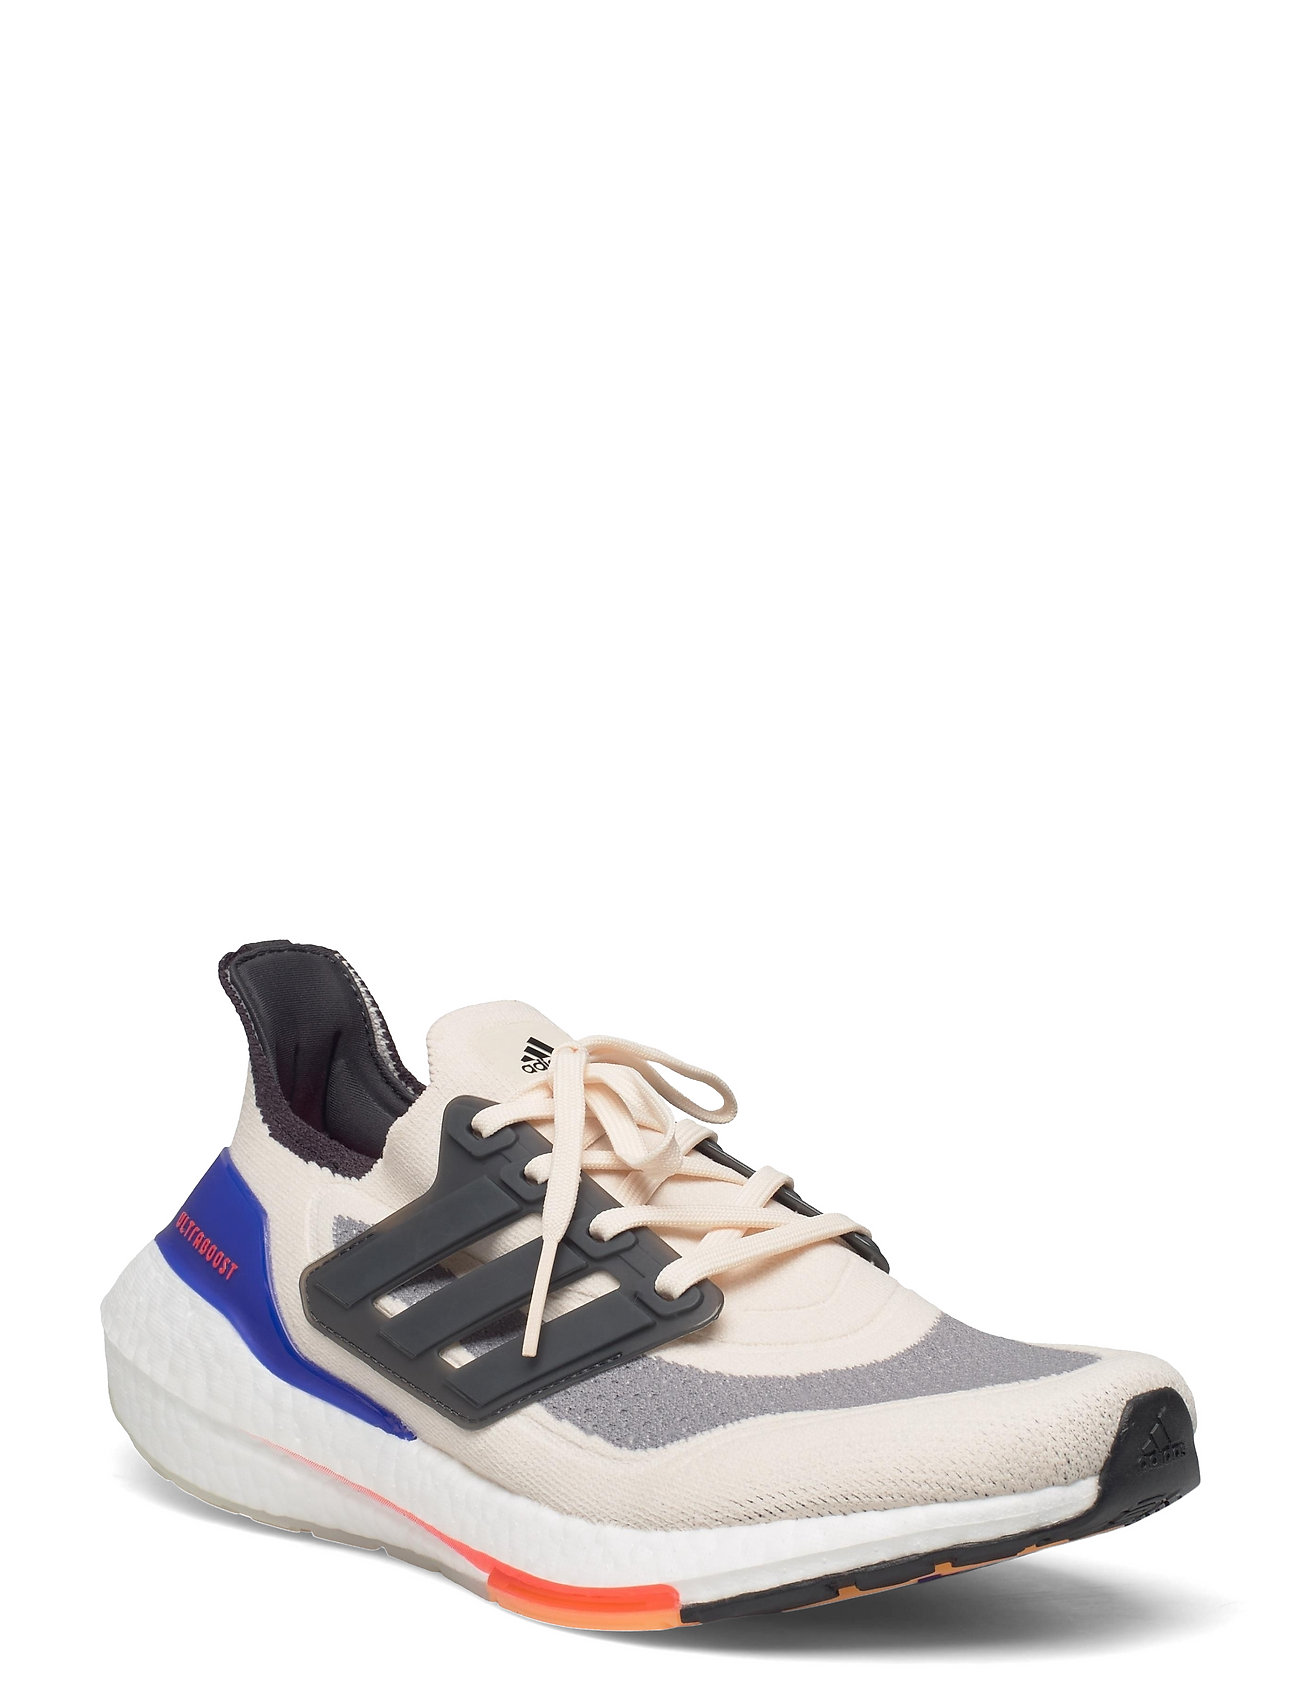 Ultraboost 21 Shoes Sport Shoes Running Shoes Multi/mønstret Adidas Performance